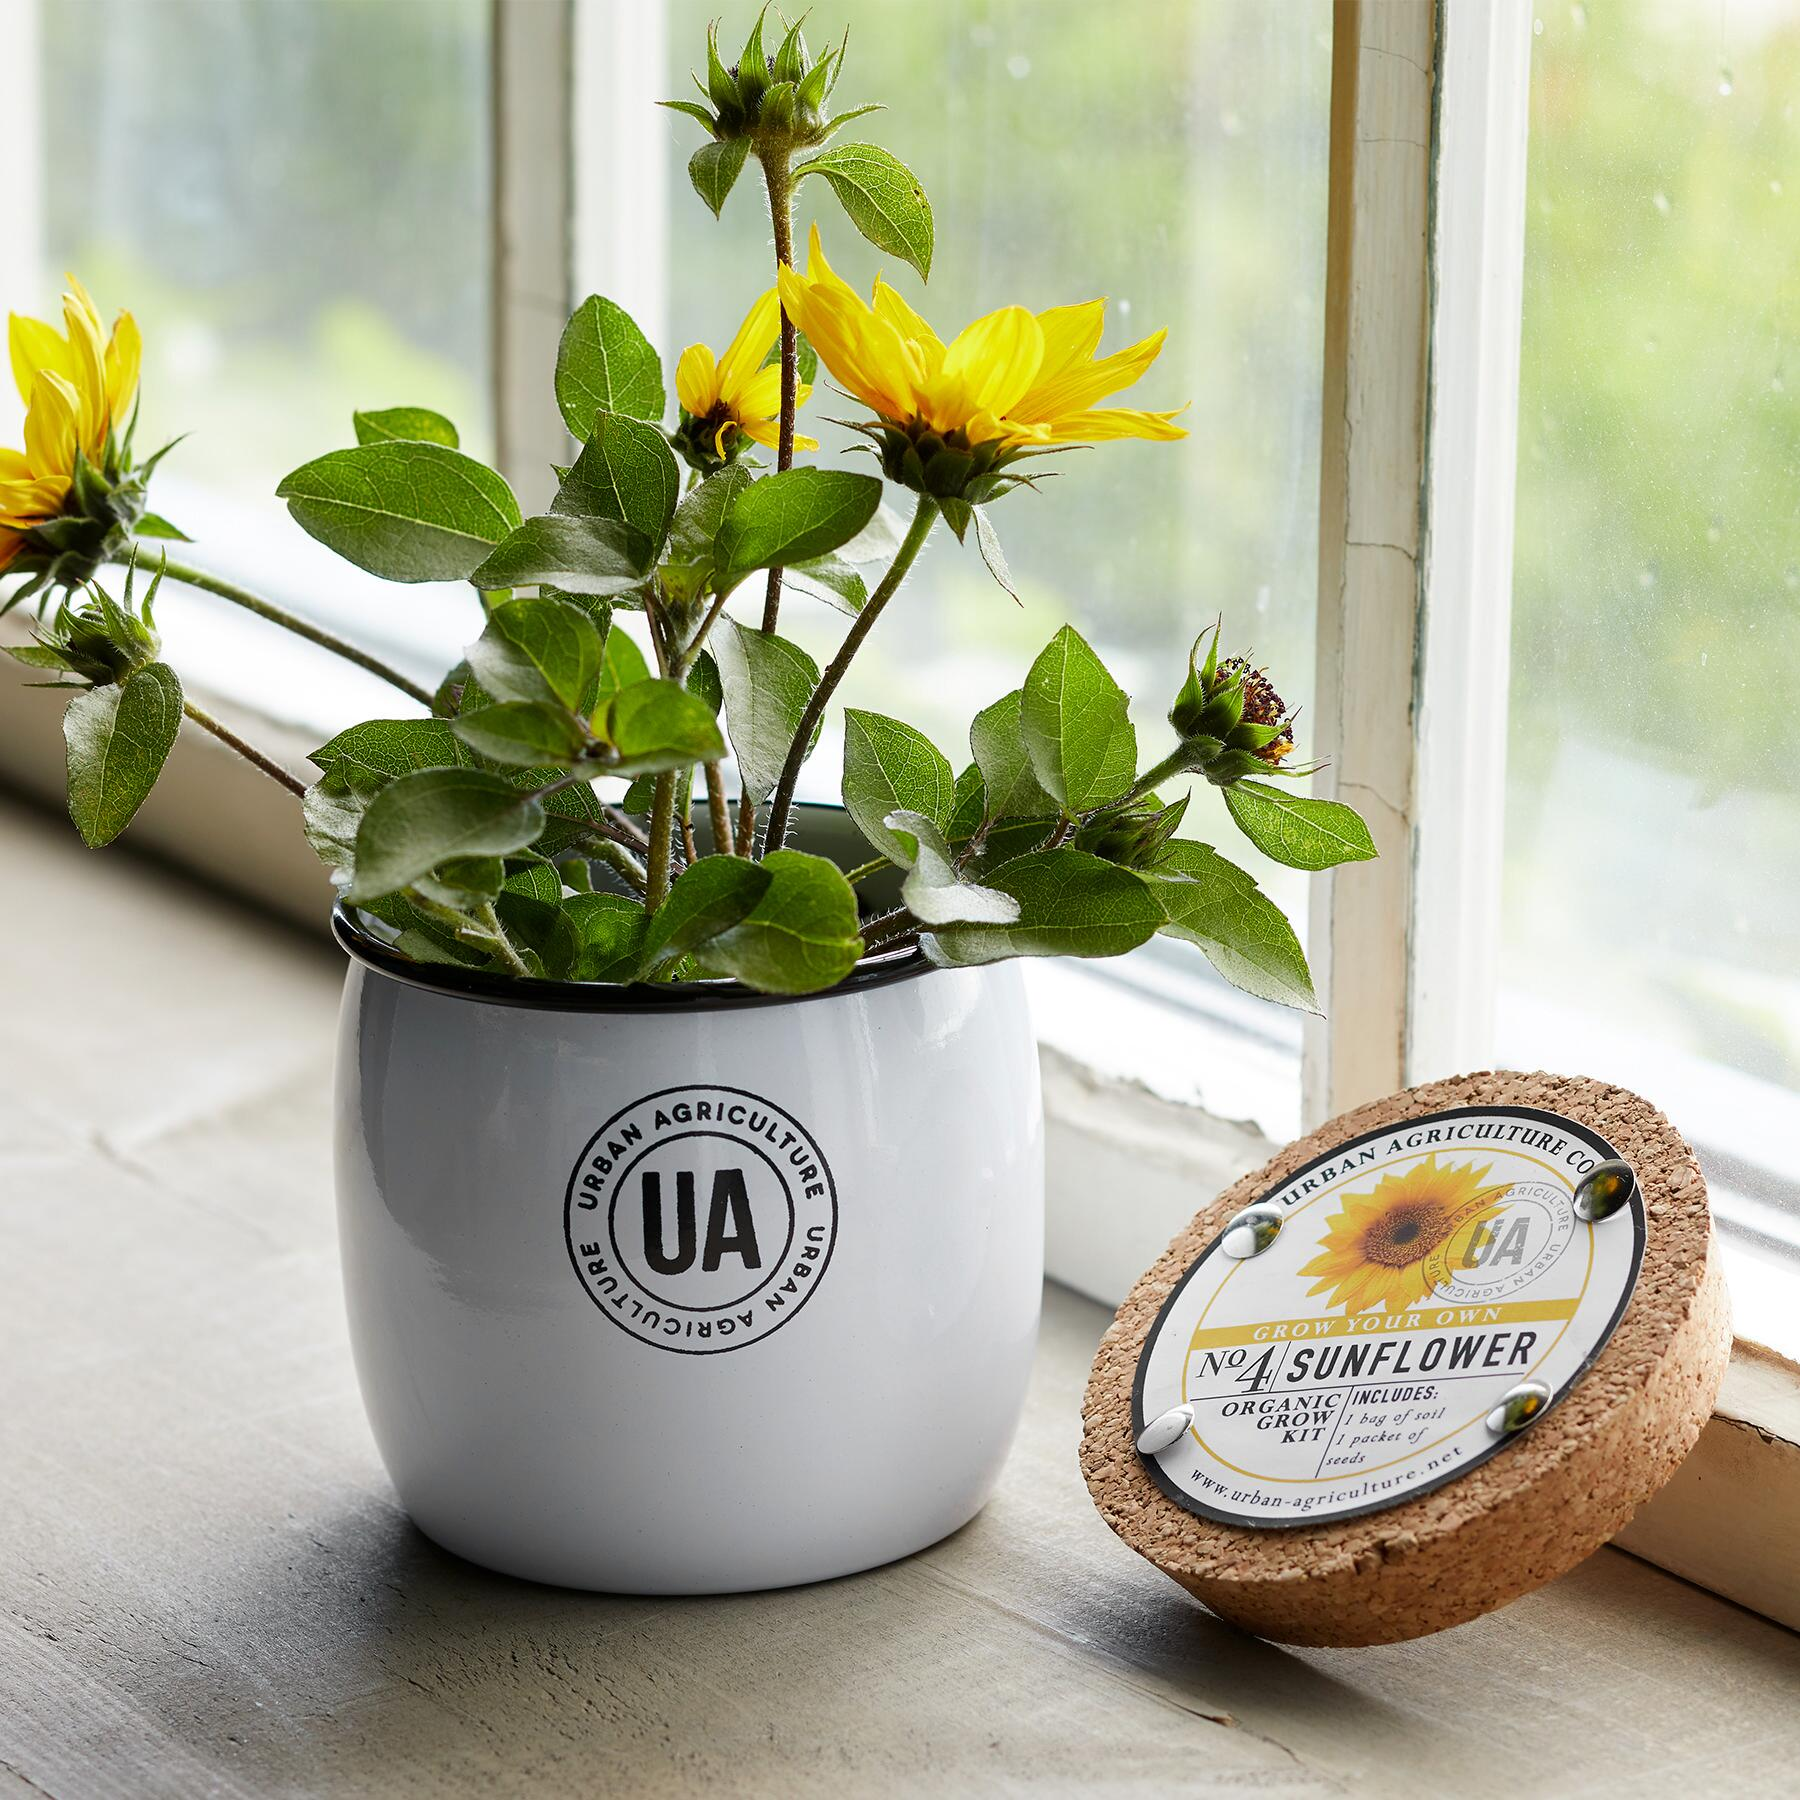 GROW YOUR OWN SUNFLOWER: View 1